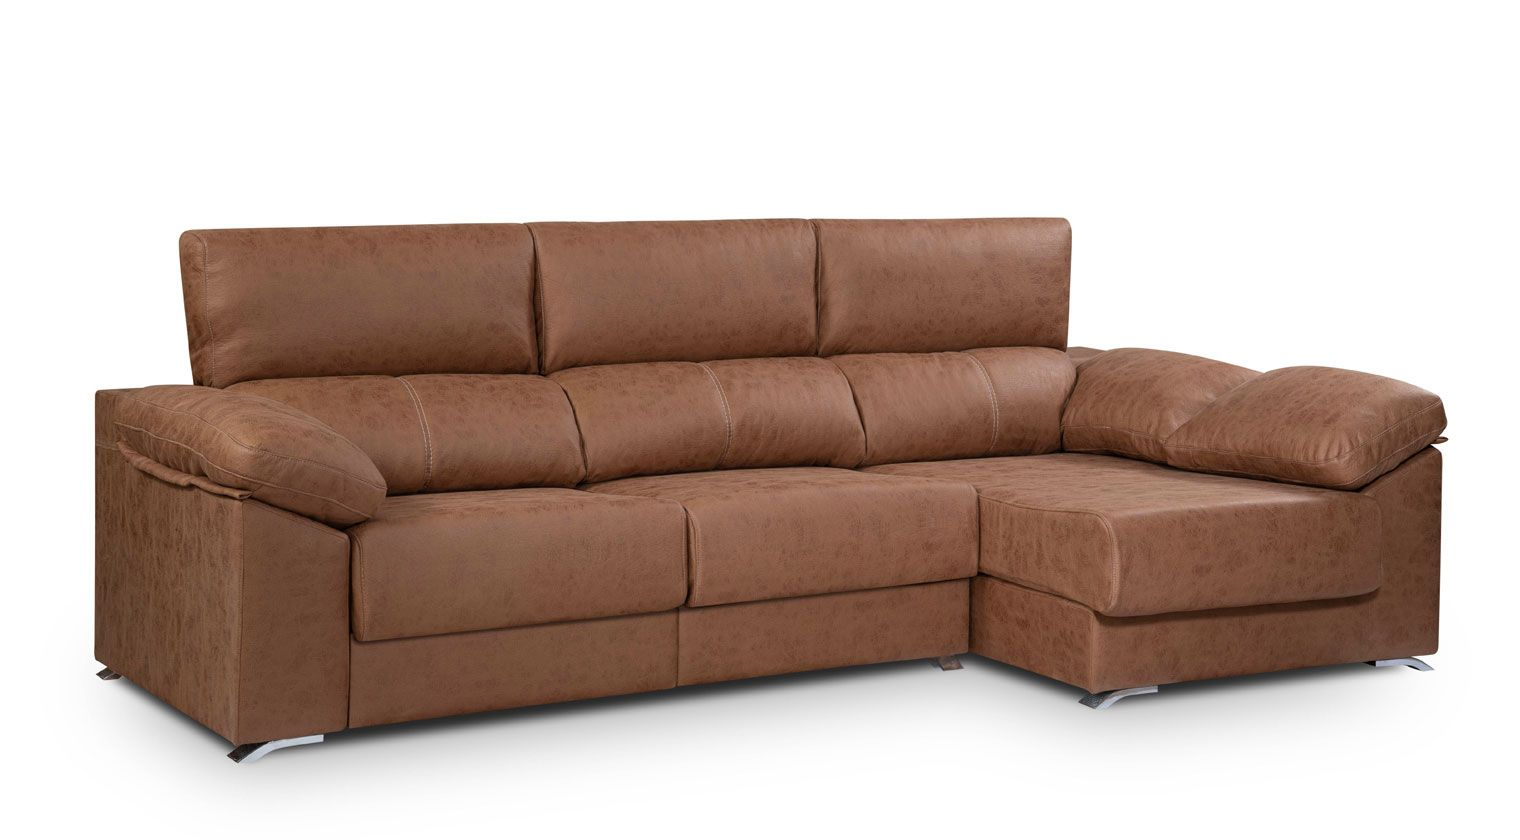 Comprar chaise longue tela lleida mod sofa 3 5 plazas for Sofas originales baratos